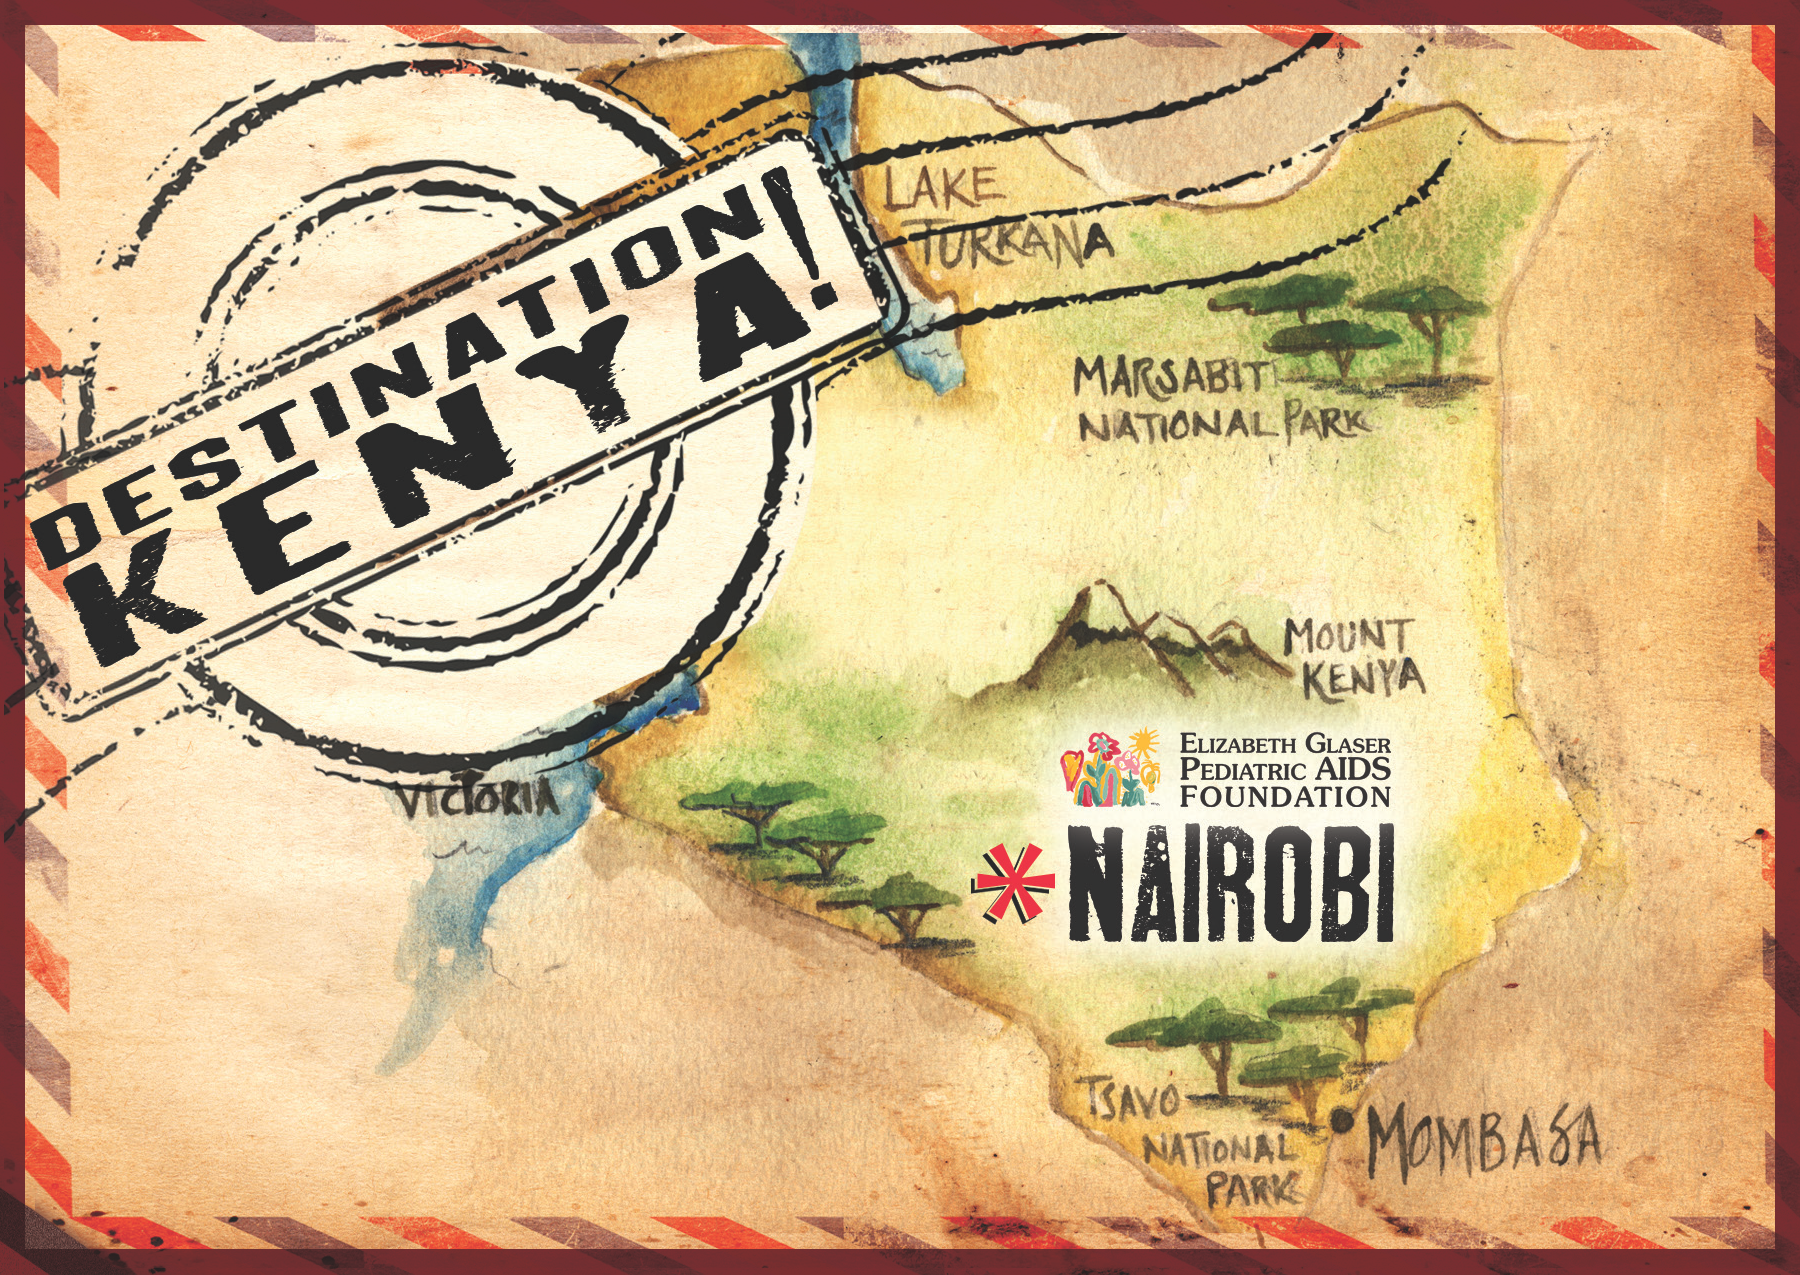 Kenya Safari Gate 1 10 day Itinerary | eTravelOmaha com